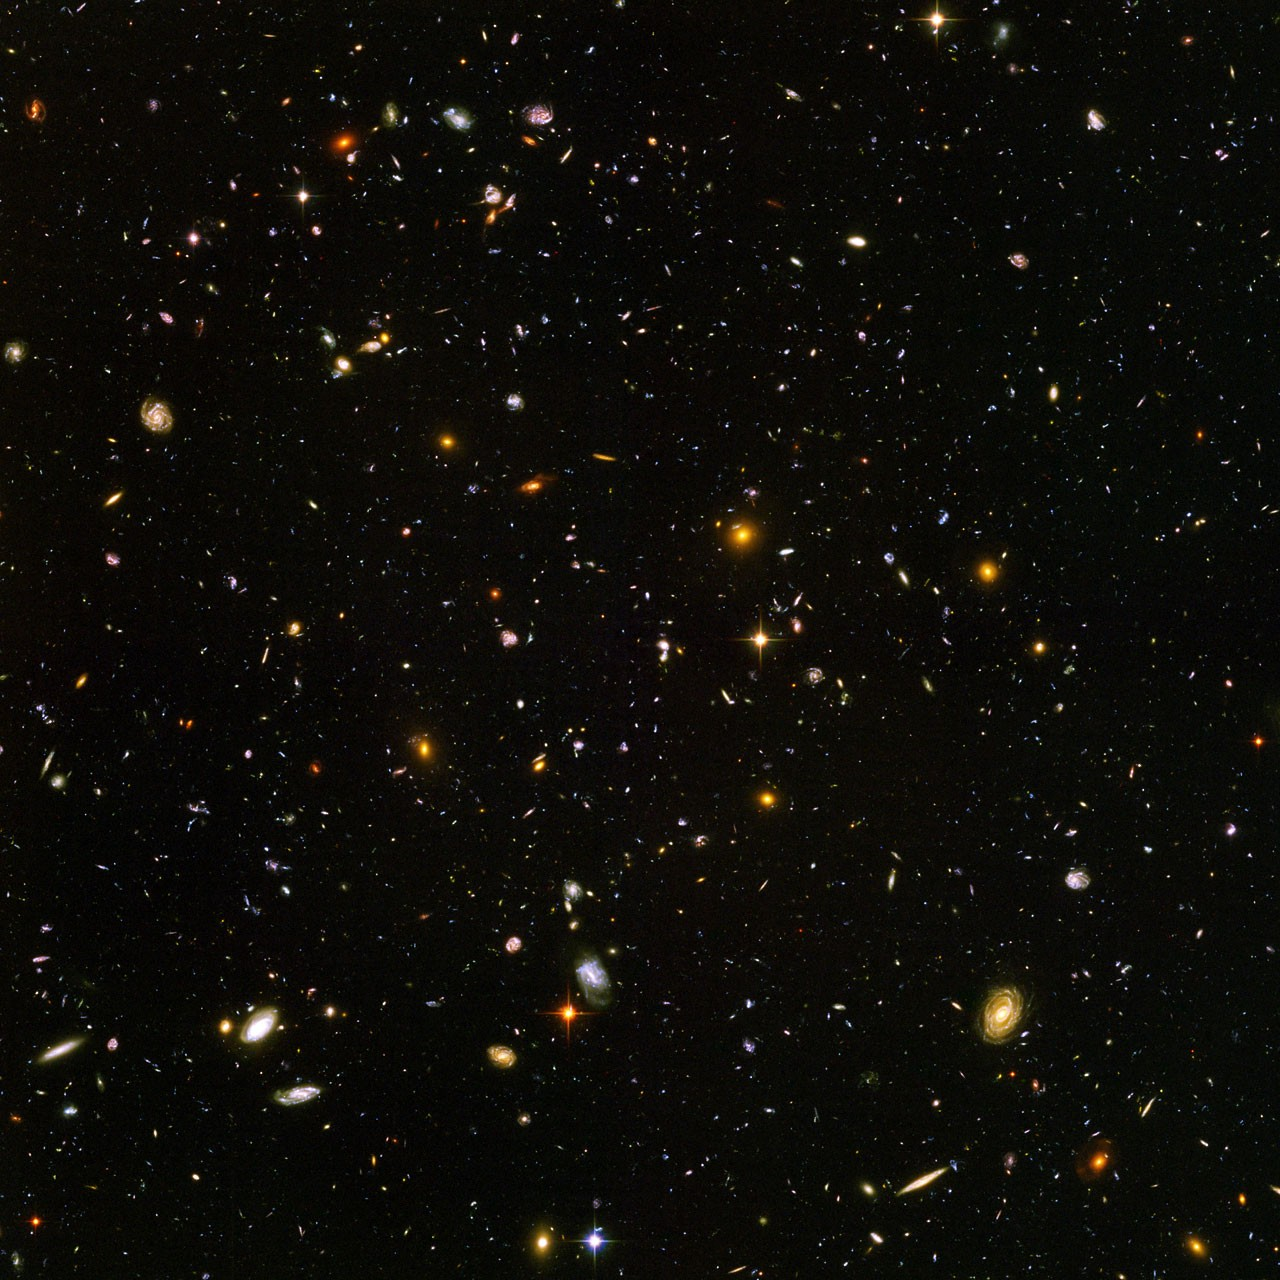 "Galaxies, galaxies everywhere - as far as the NASA/ESA Hubble Space Telescope can see. This view of nearly 10,000 galaxies is the deepest visible-light image of the cosmos. Called the Hubble Ultra Deep Field, this galaxy-studded view represents a ""deep"" core sample of the universe, cutting across billions of light-years. The snapshot includes galaxies of various ages, sizes, shapes, and colours. The smallest, reddest galaxies, about 100, may be among the most distant known, existing when the universe was just 800 million years old. The nearest galaxies - the larger, brighter, well-defined spirals and ellipticals - thrived about 1 billion years ago, when the cosmos was 13 billion years old. In vibrant contrast to the rich harvest of classic spiral and elliptical galaxies, there is a zoo of oddball galaxies littering the field. Some look like toothpicks; others like links on a bracelet. A few appear to be interacting. These oddball galaxies chronicle a period when the universe was younger and more chaotic. Order and structure were just beginning to emerge. The Ultra Deep Field observations, taken by the Advanced Camera for Surveys, represent a narrow, deep view of the cosmos. Peering into the Ultra Deep Field is like looking through a 2.5 metre-long soda straw. In ground-based photographs, the patch of sky in which the galaxies reside (just one-tenth the diameter of the full Moon) is largely empty. Located in the constellation Fornax, the region is so empty that only a handful of stars within the Milky Way galaxy can be seen in the image. In this image, blue and green correspond to colours that can be seen by the human eye, such as hot, young, blue stars and the glow of Sun-like stars in the disks of galaxies. Red represents near-infrared light, which is invisible to the human eye, such as the red glow of dust-enshrouded galaxies. The image required 800 exposures taken over the course of 400 Hubble orbits around Earth. The total amount of exposure time was 11.3 days,"